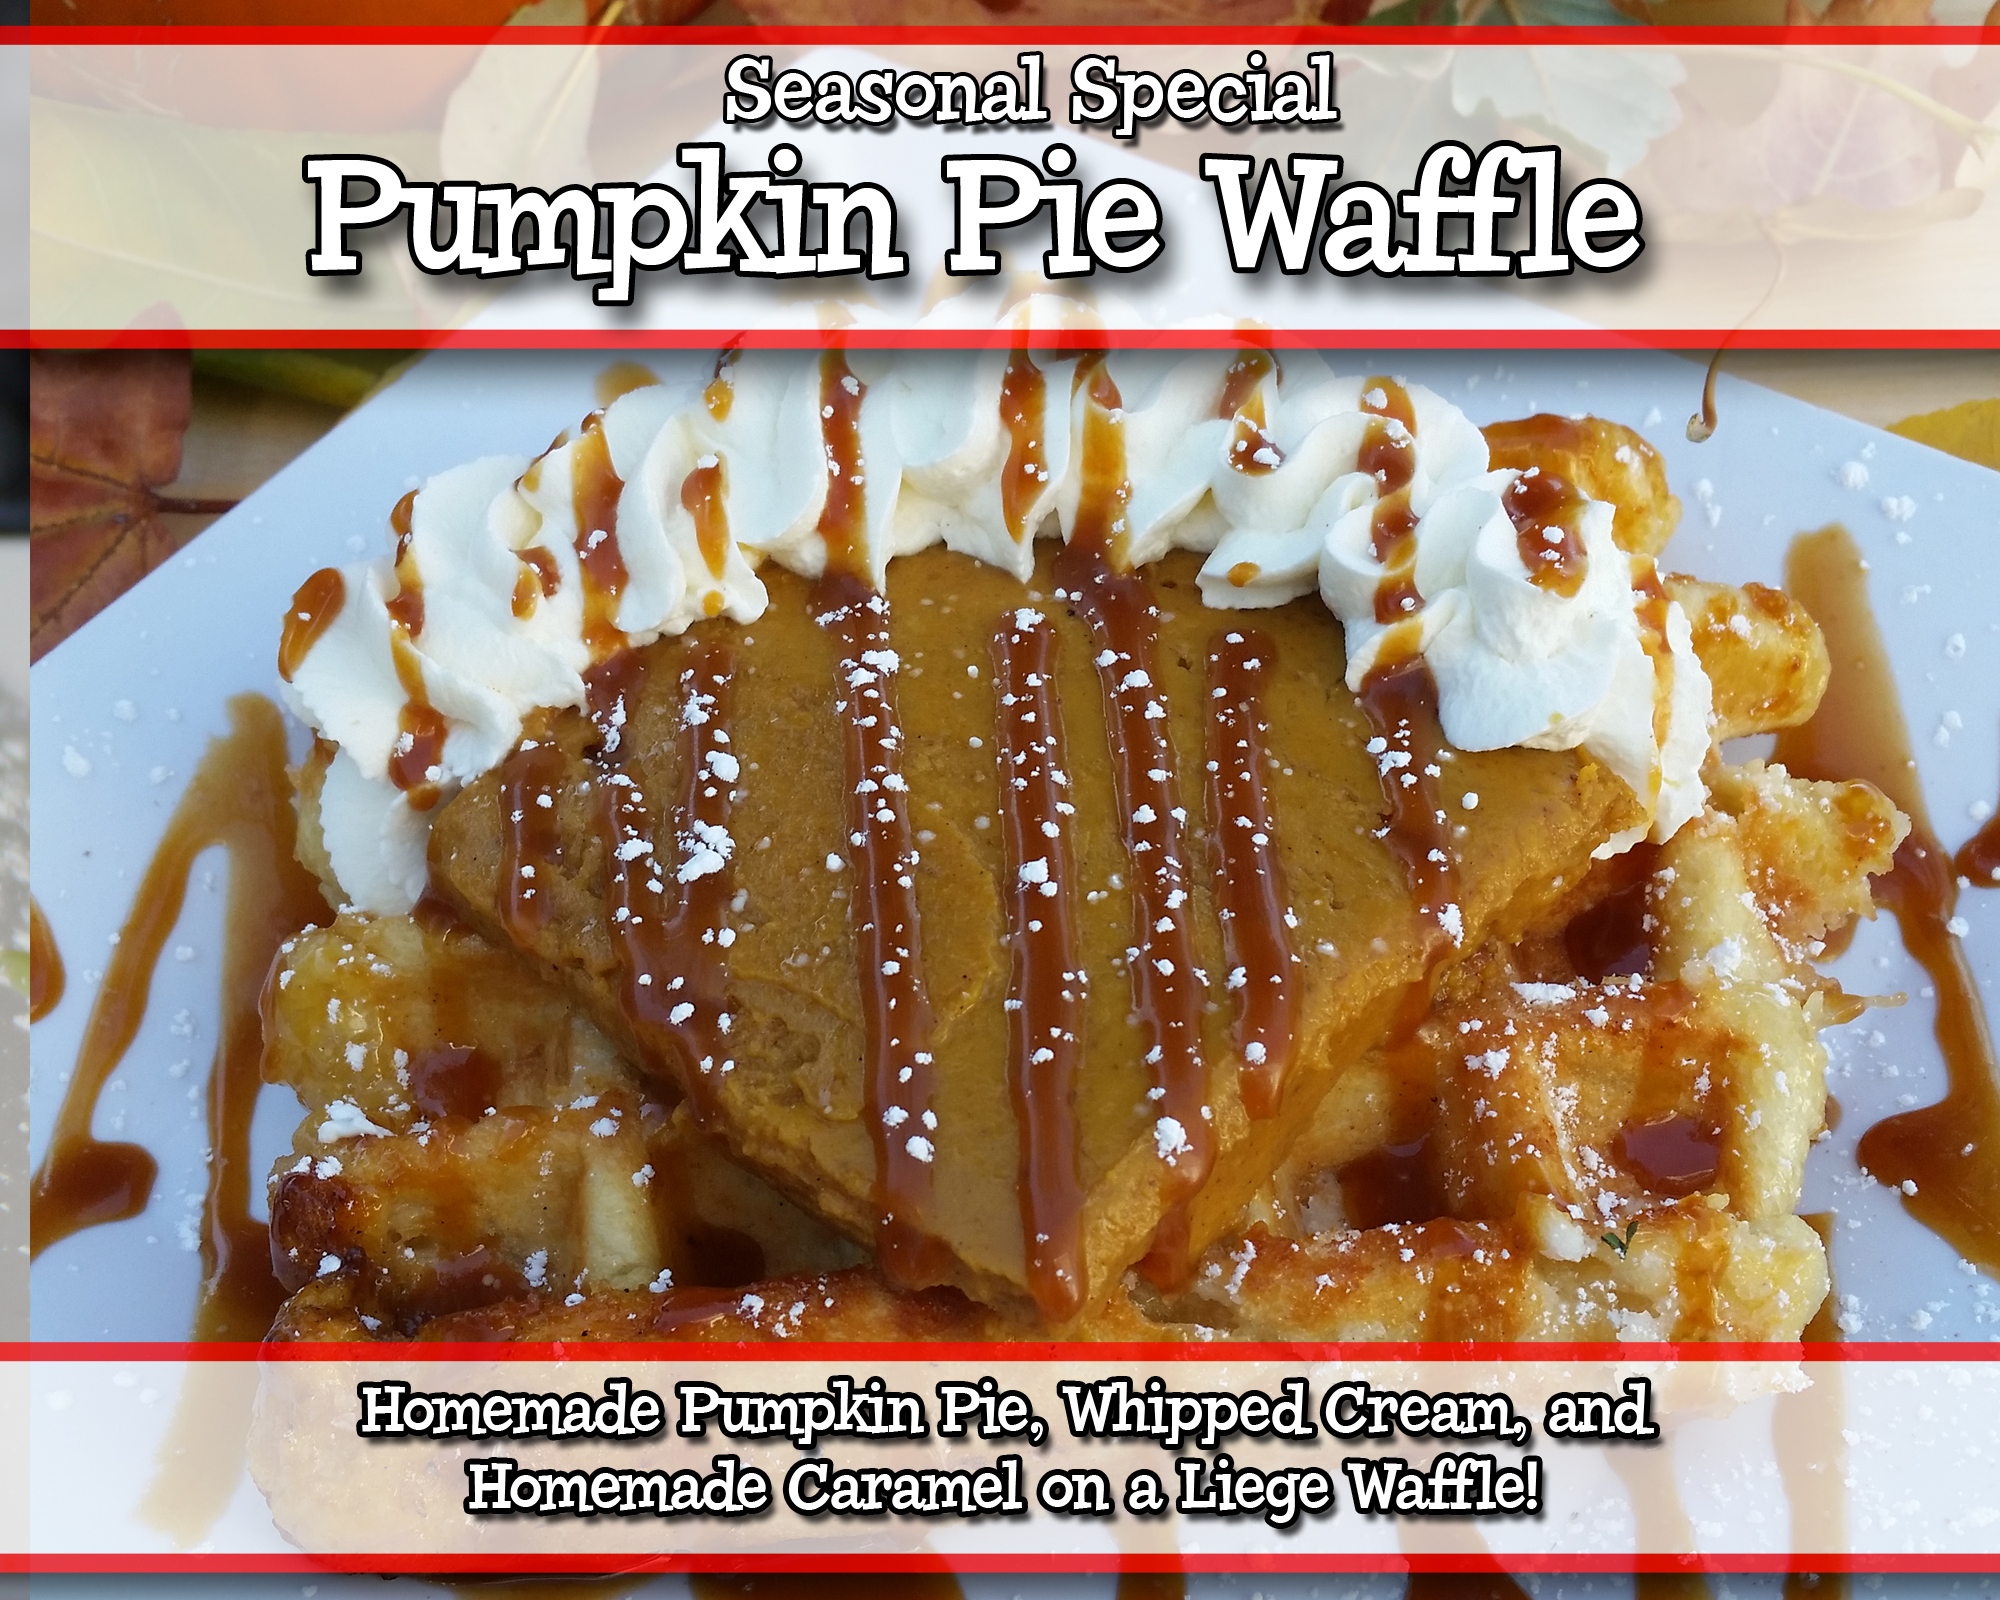 Pumpkin Pie Waffle! Get it while it lasts!